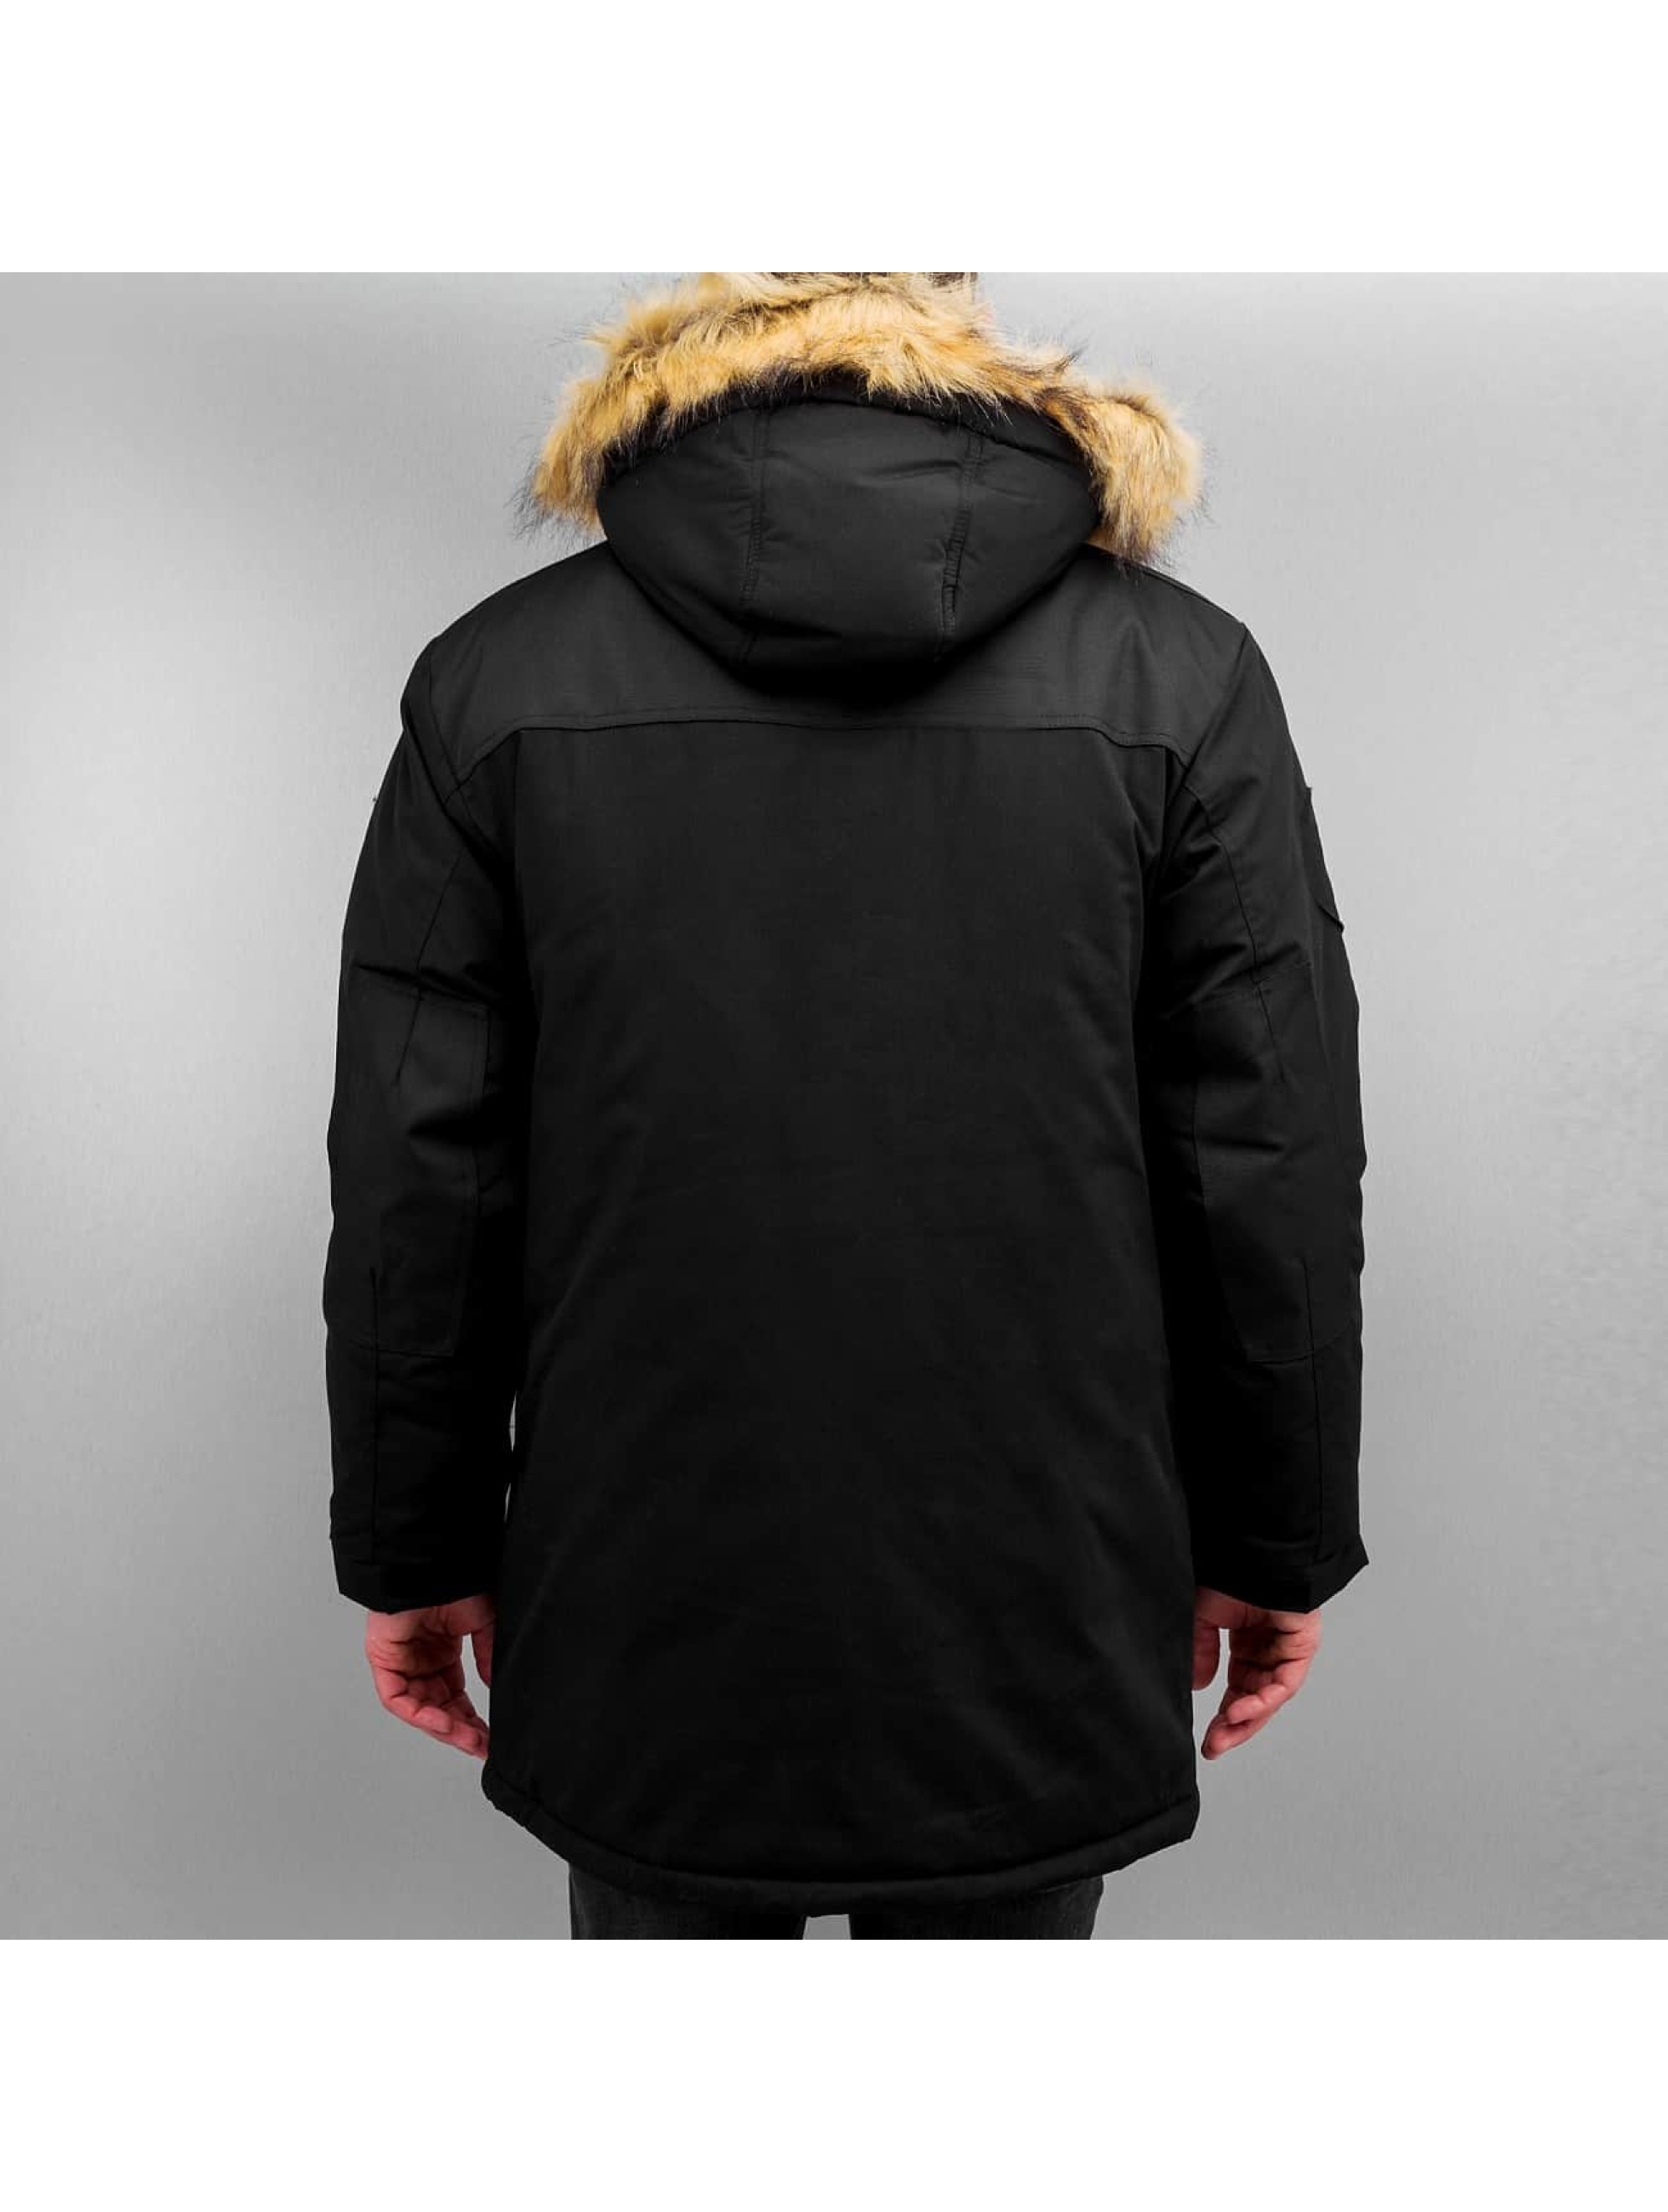 Grimey Wear Winterjacke Smoky Alley schwarz